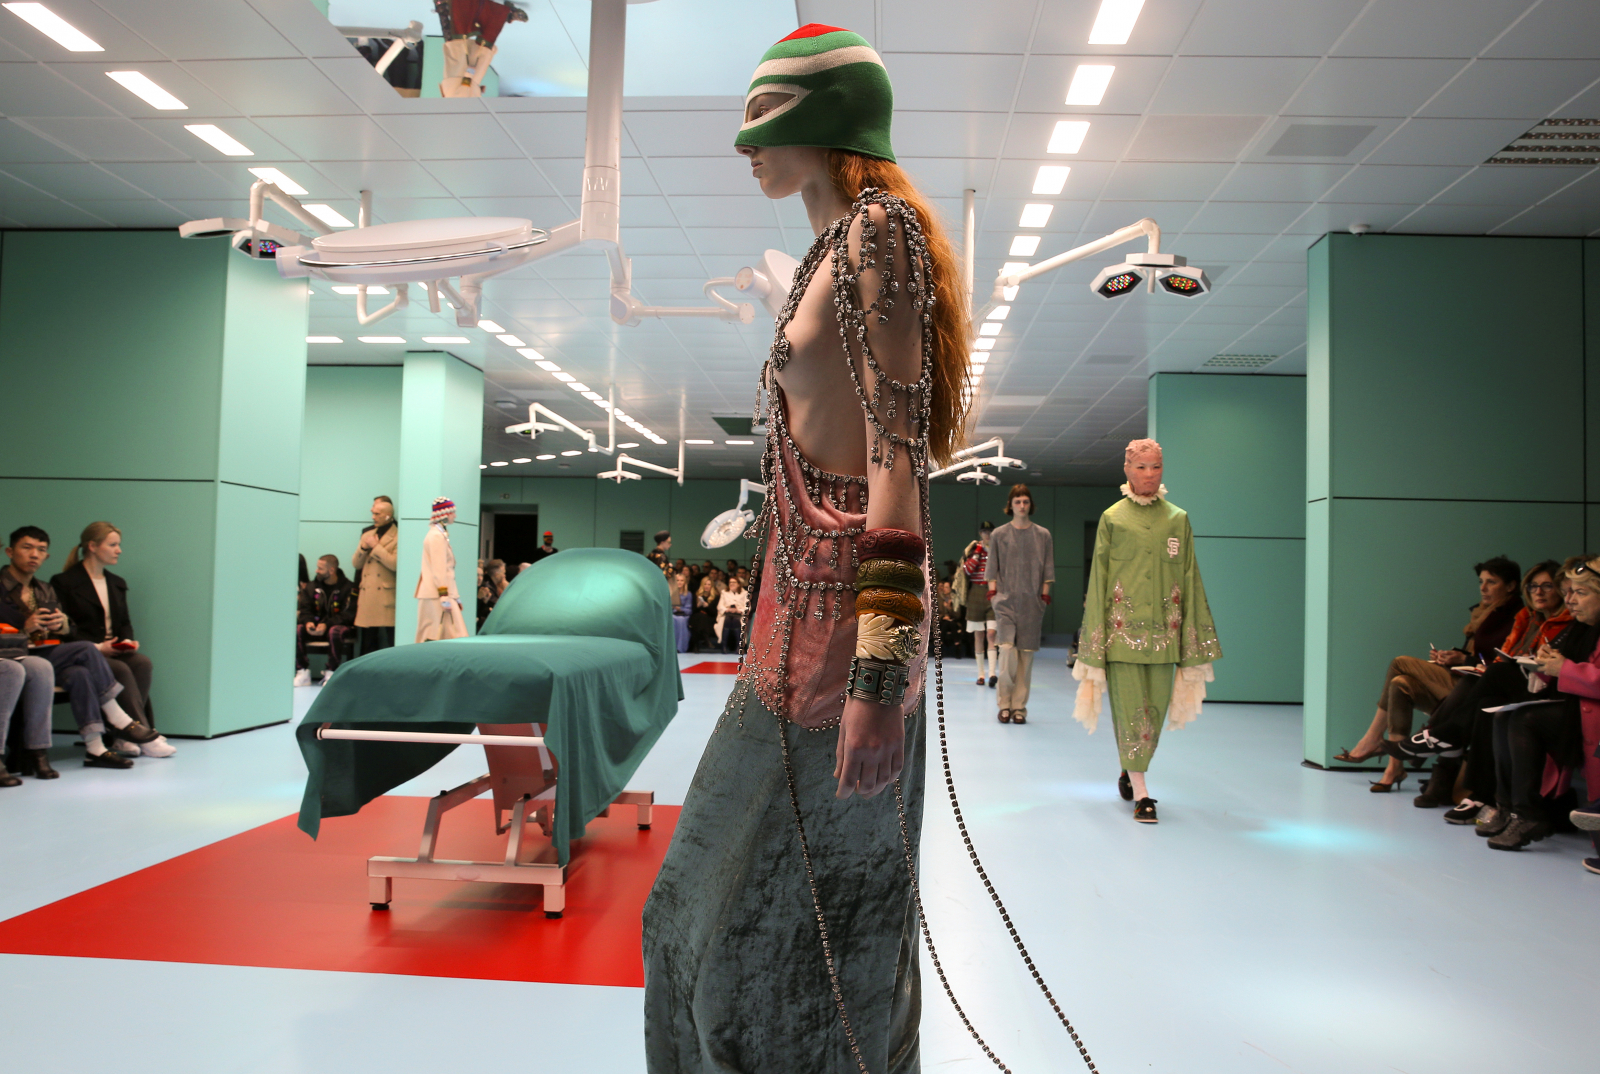 dcd0551e5 In pictures: Glimpses of extraordinary collections at Milan Fashion Week  2018